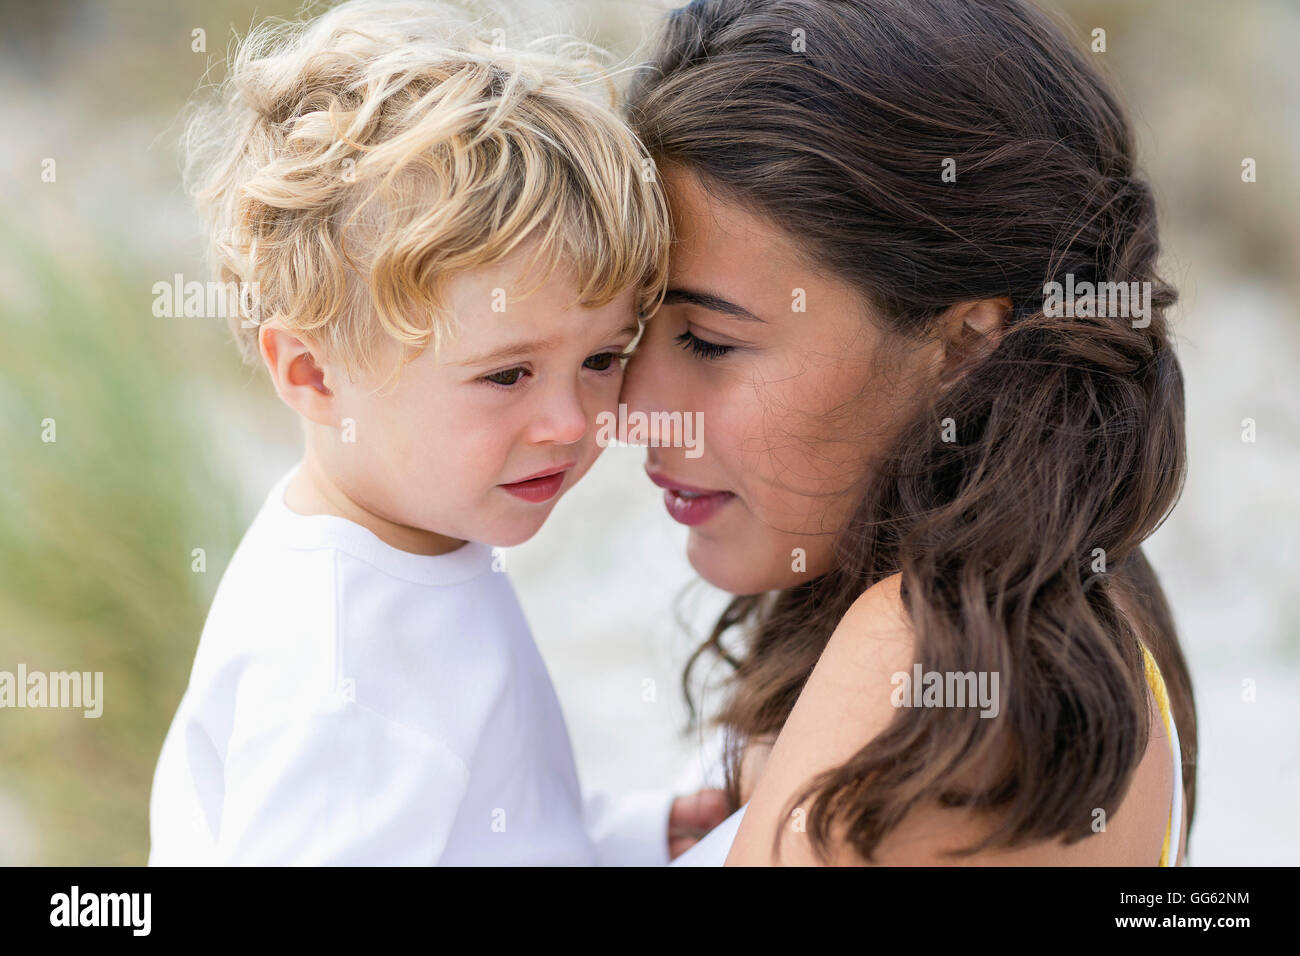 Close-up of a woman loving with her son - Stock Image